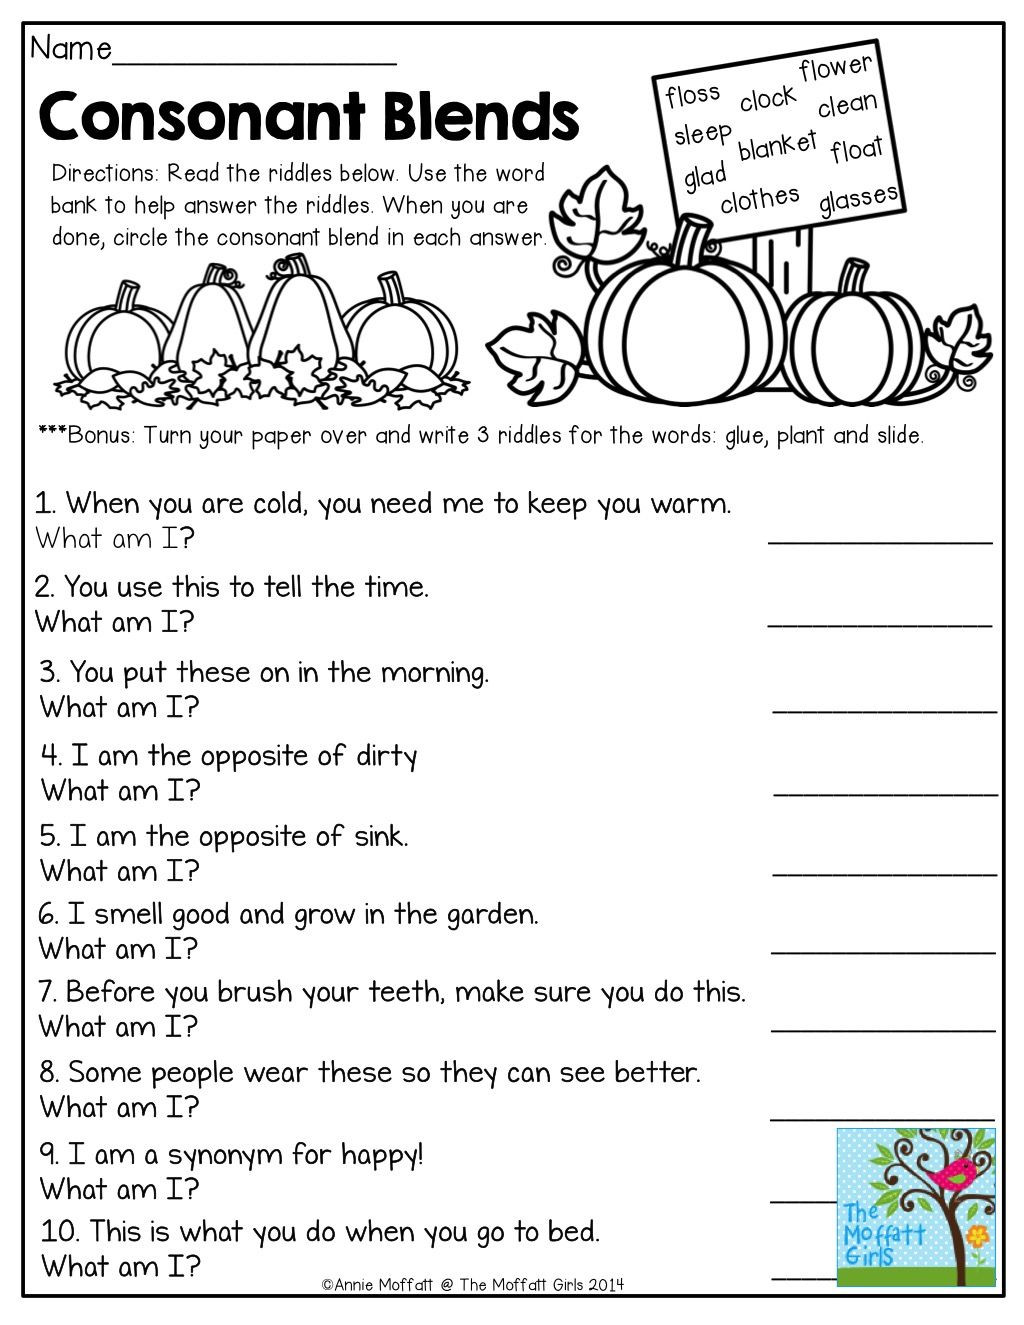 Third Grade Phonics Worksheets Consonant Blends Mystery Words Read the Clues and Write the